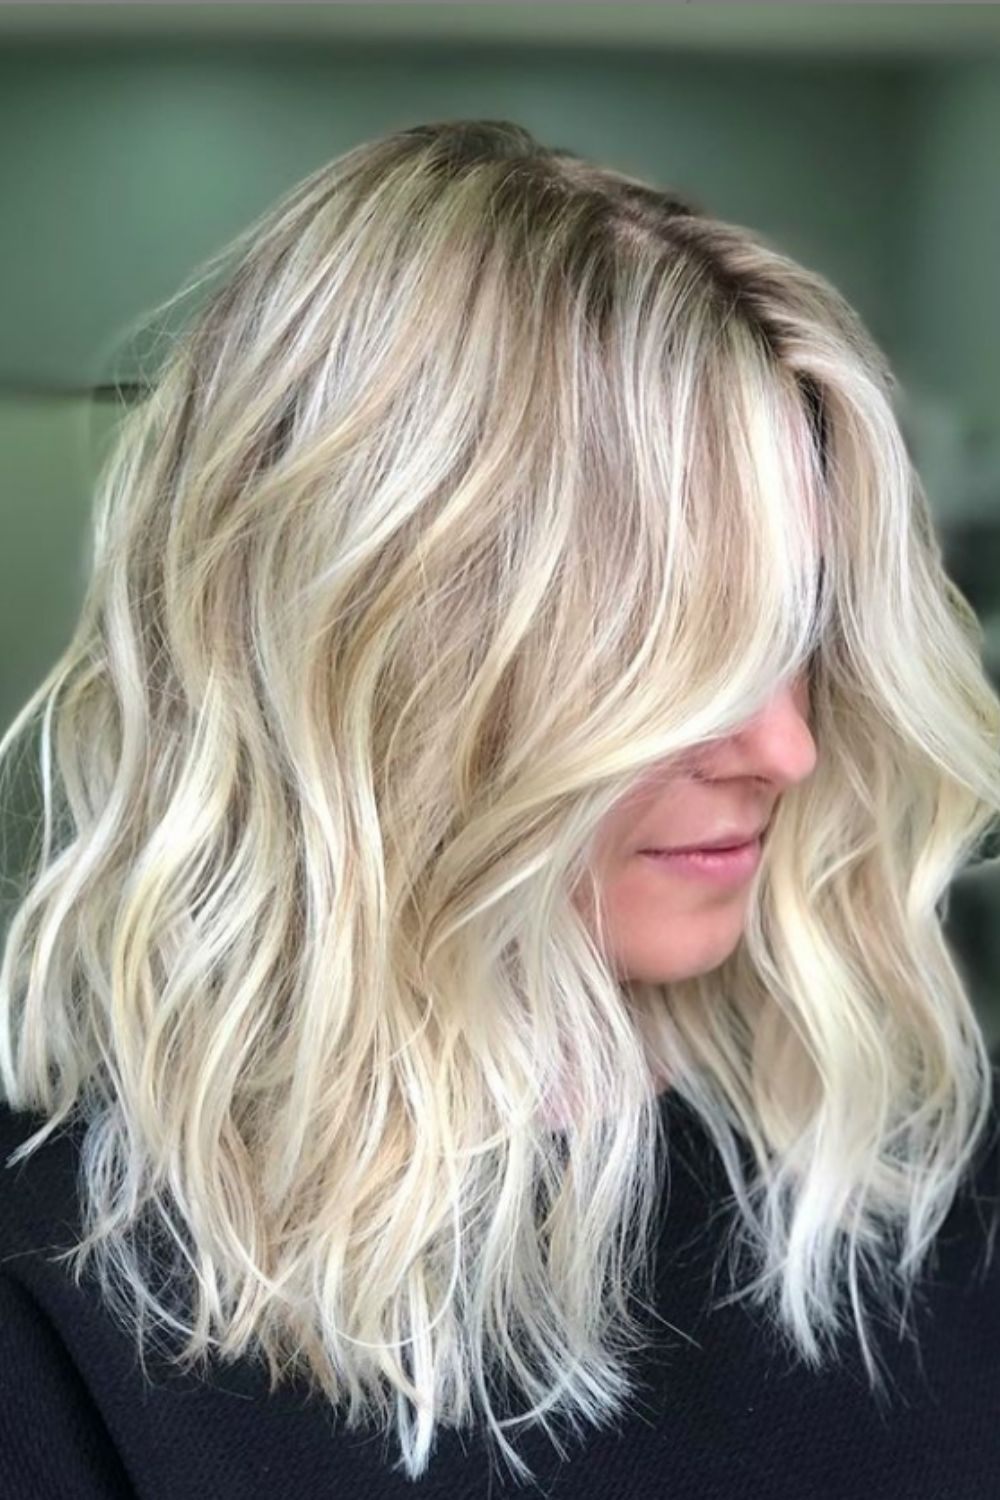 Blonde hairstyles | How to style blonde hair with curtain bangs?